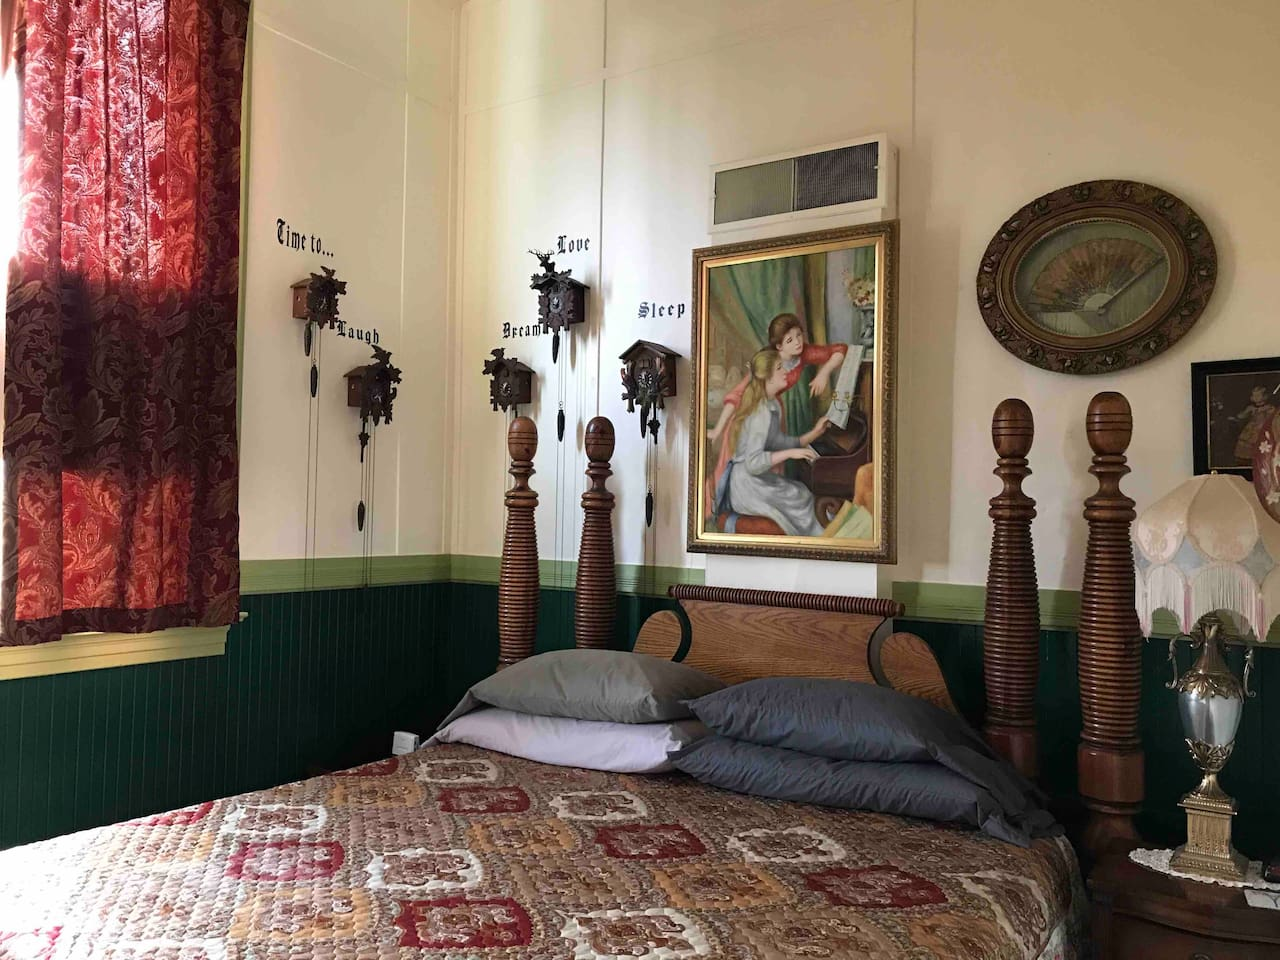 The newly decorated Clark Room captures the style of Deer Island Manor. Filled with antiques and eclectic artwork, the Clark Room with its deluxe king sized bed awaits you!